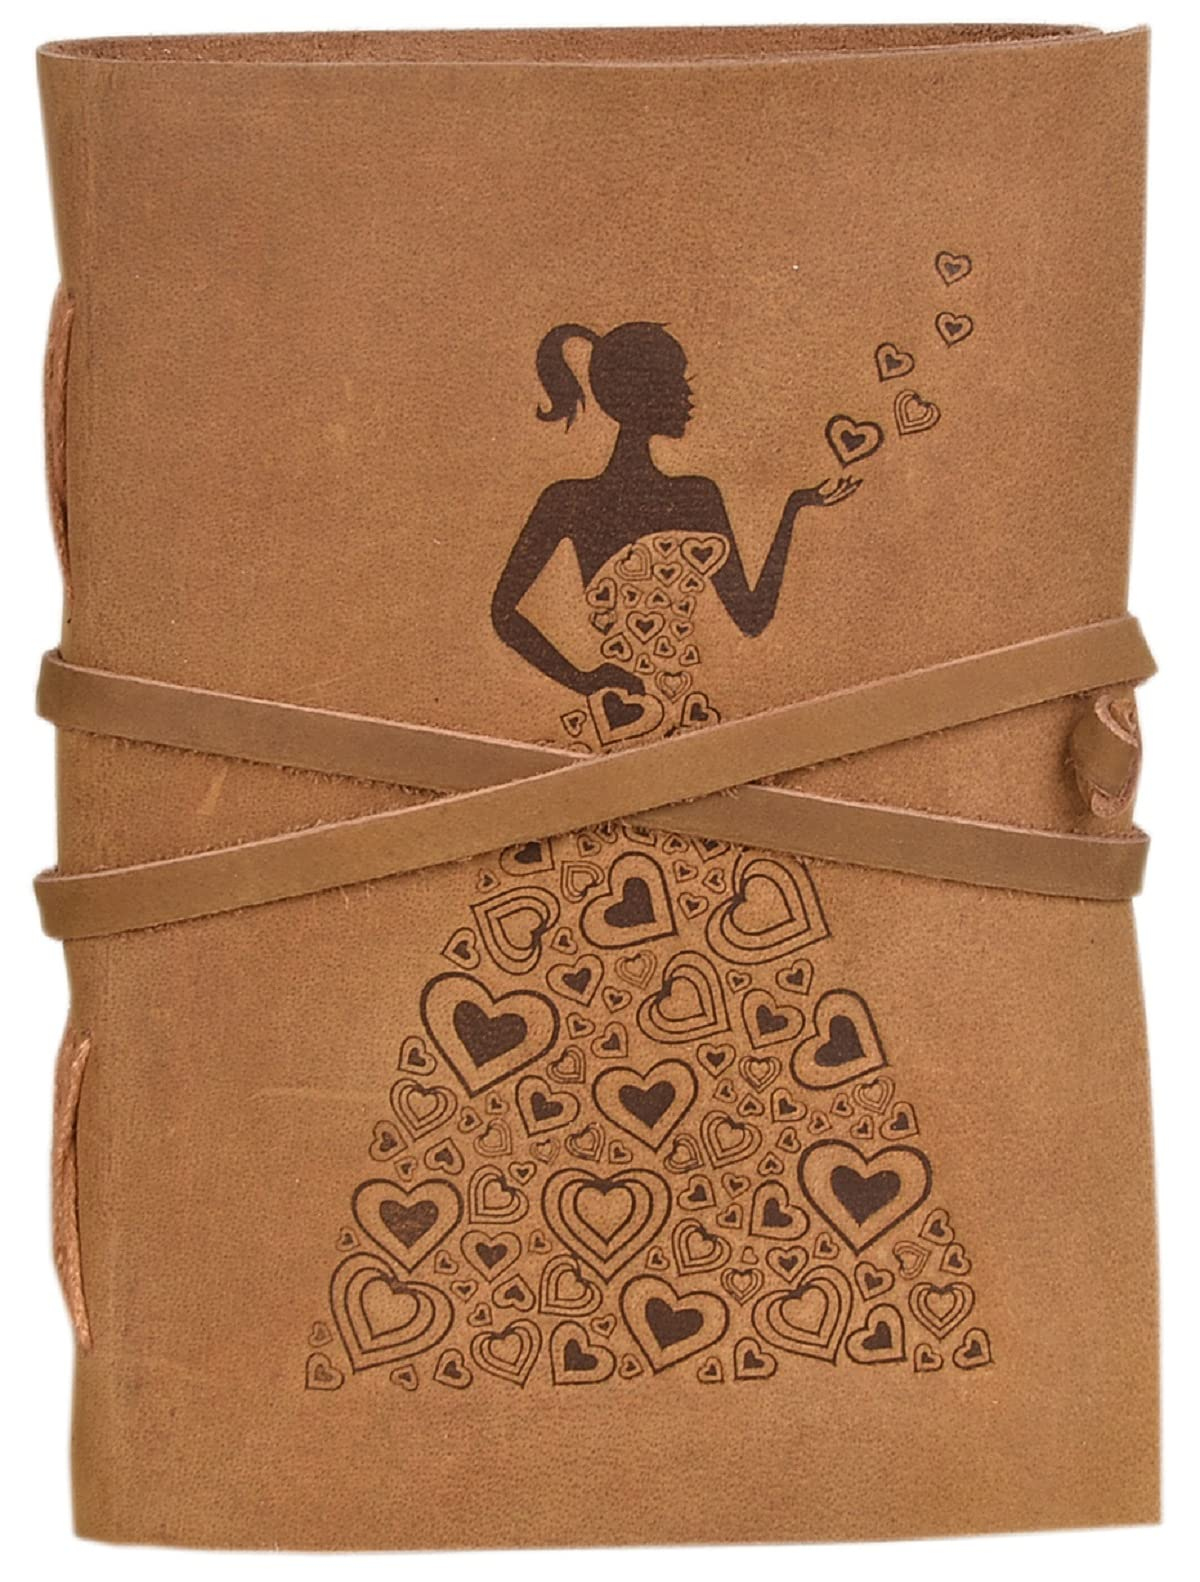 CAVALO – Be Unique Leather Diary Princess with Heart Embossed Diary Vintage Artist Sketchbook, Scrapbook, Drawing & Writing Diary with Leather Bound Brown 5 × 7 inch Unlined Paper (Camel Brown)